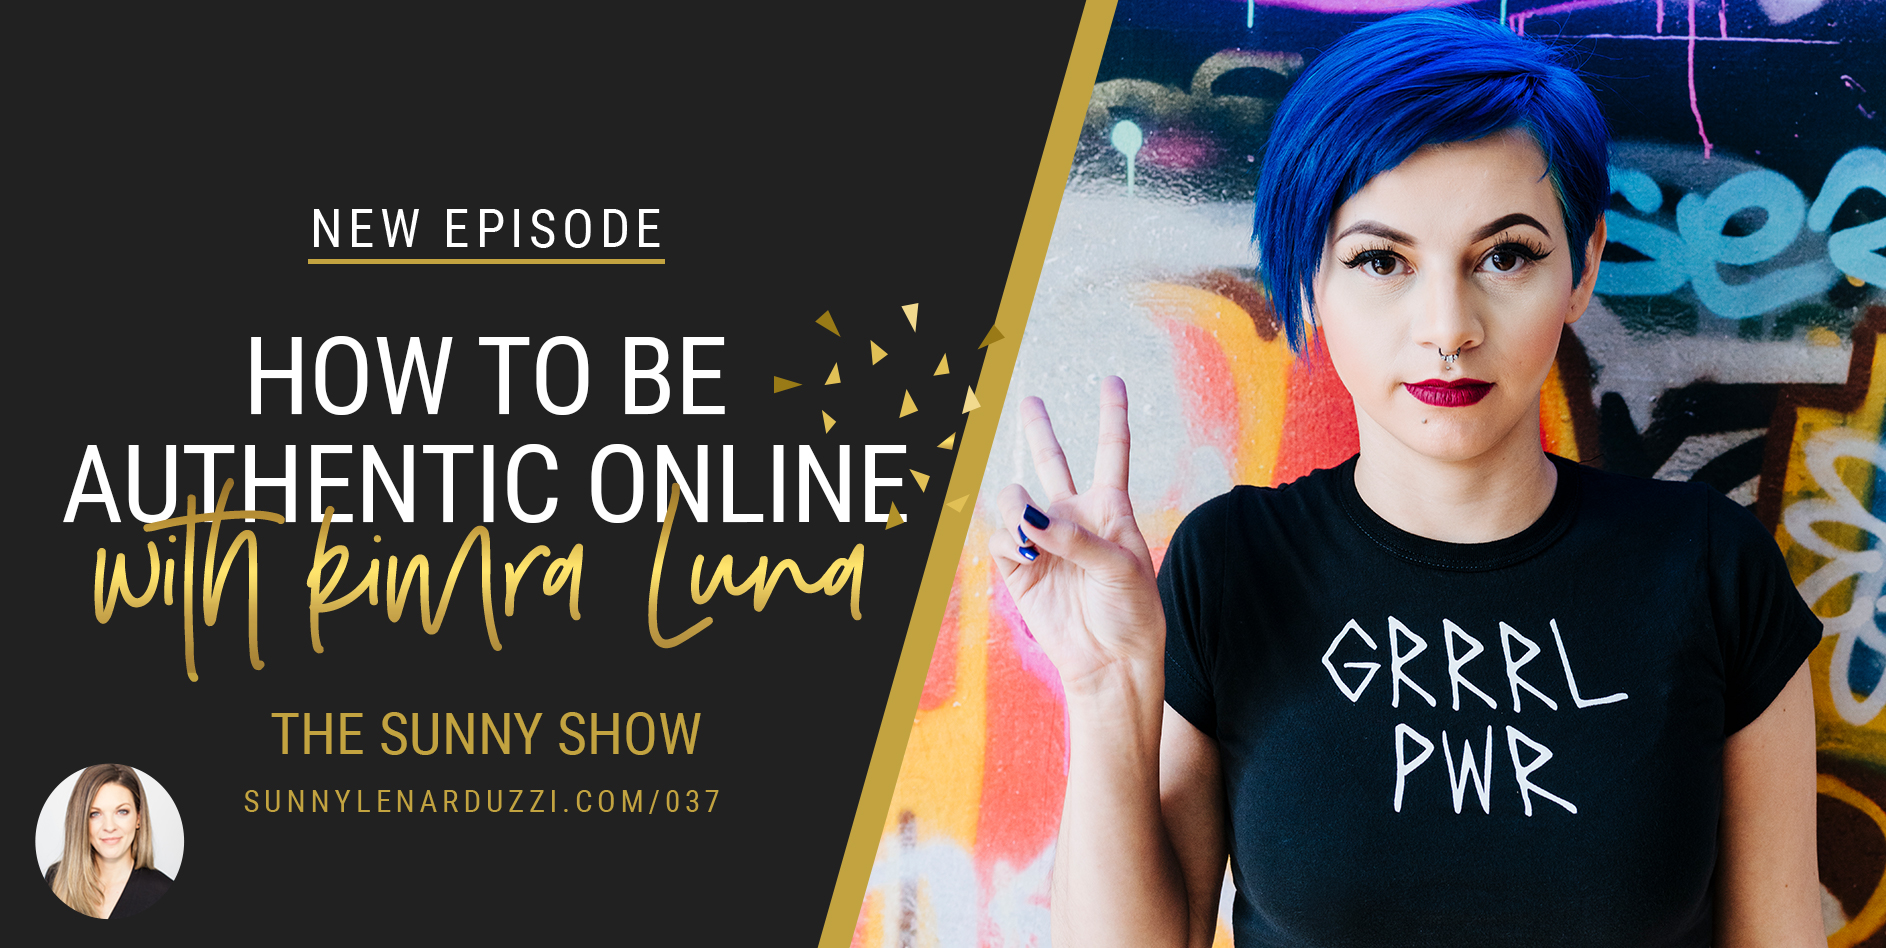 How to be authentic online with Kimra Luna